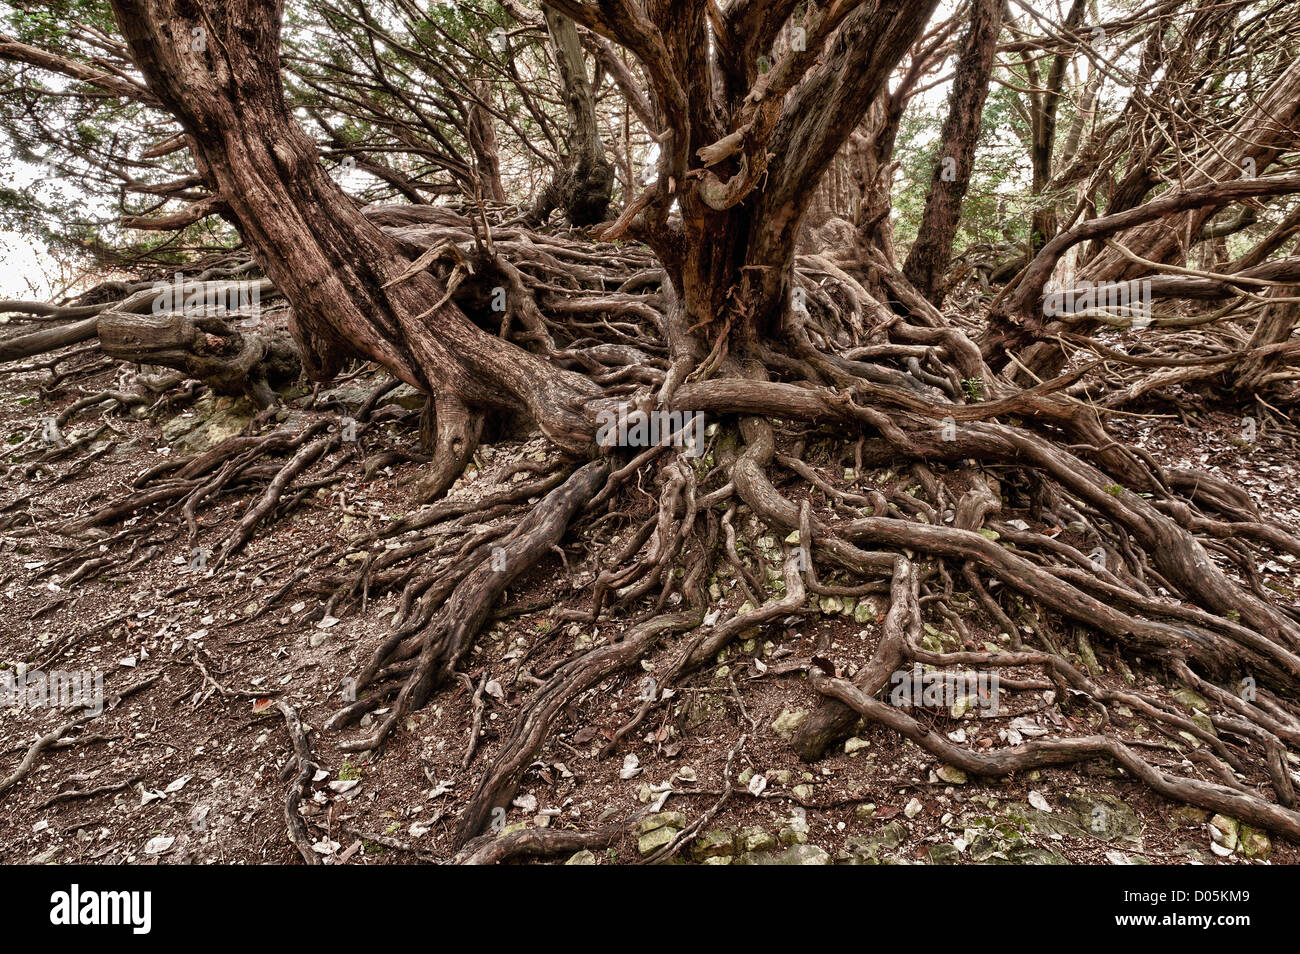 ancient taxus baccata yew tree stockfotos ancient taxus baccata yew tree bilder seite 2 alamy. Black Bedroom Furniture Sets. Home Design Ideas